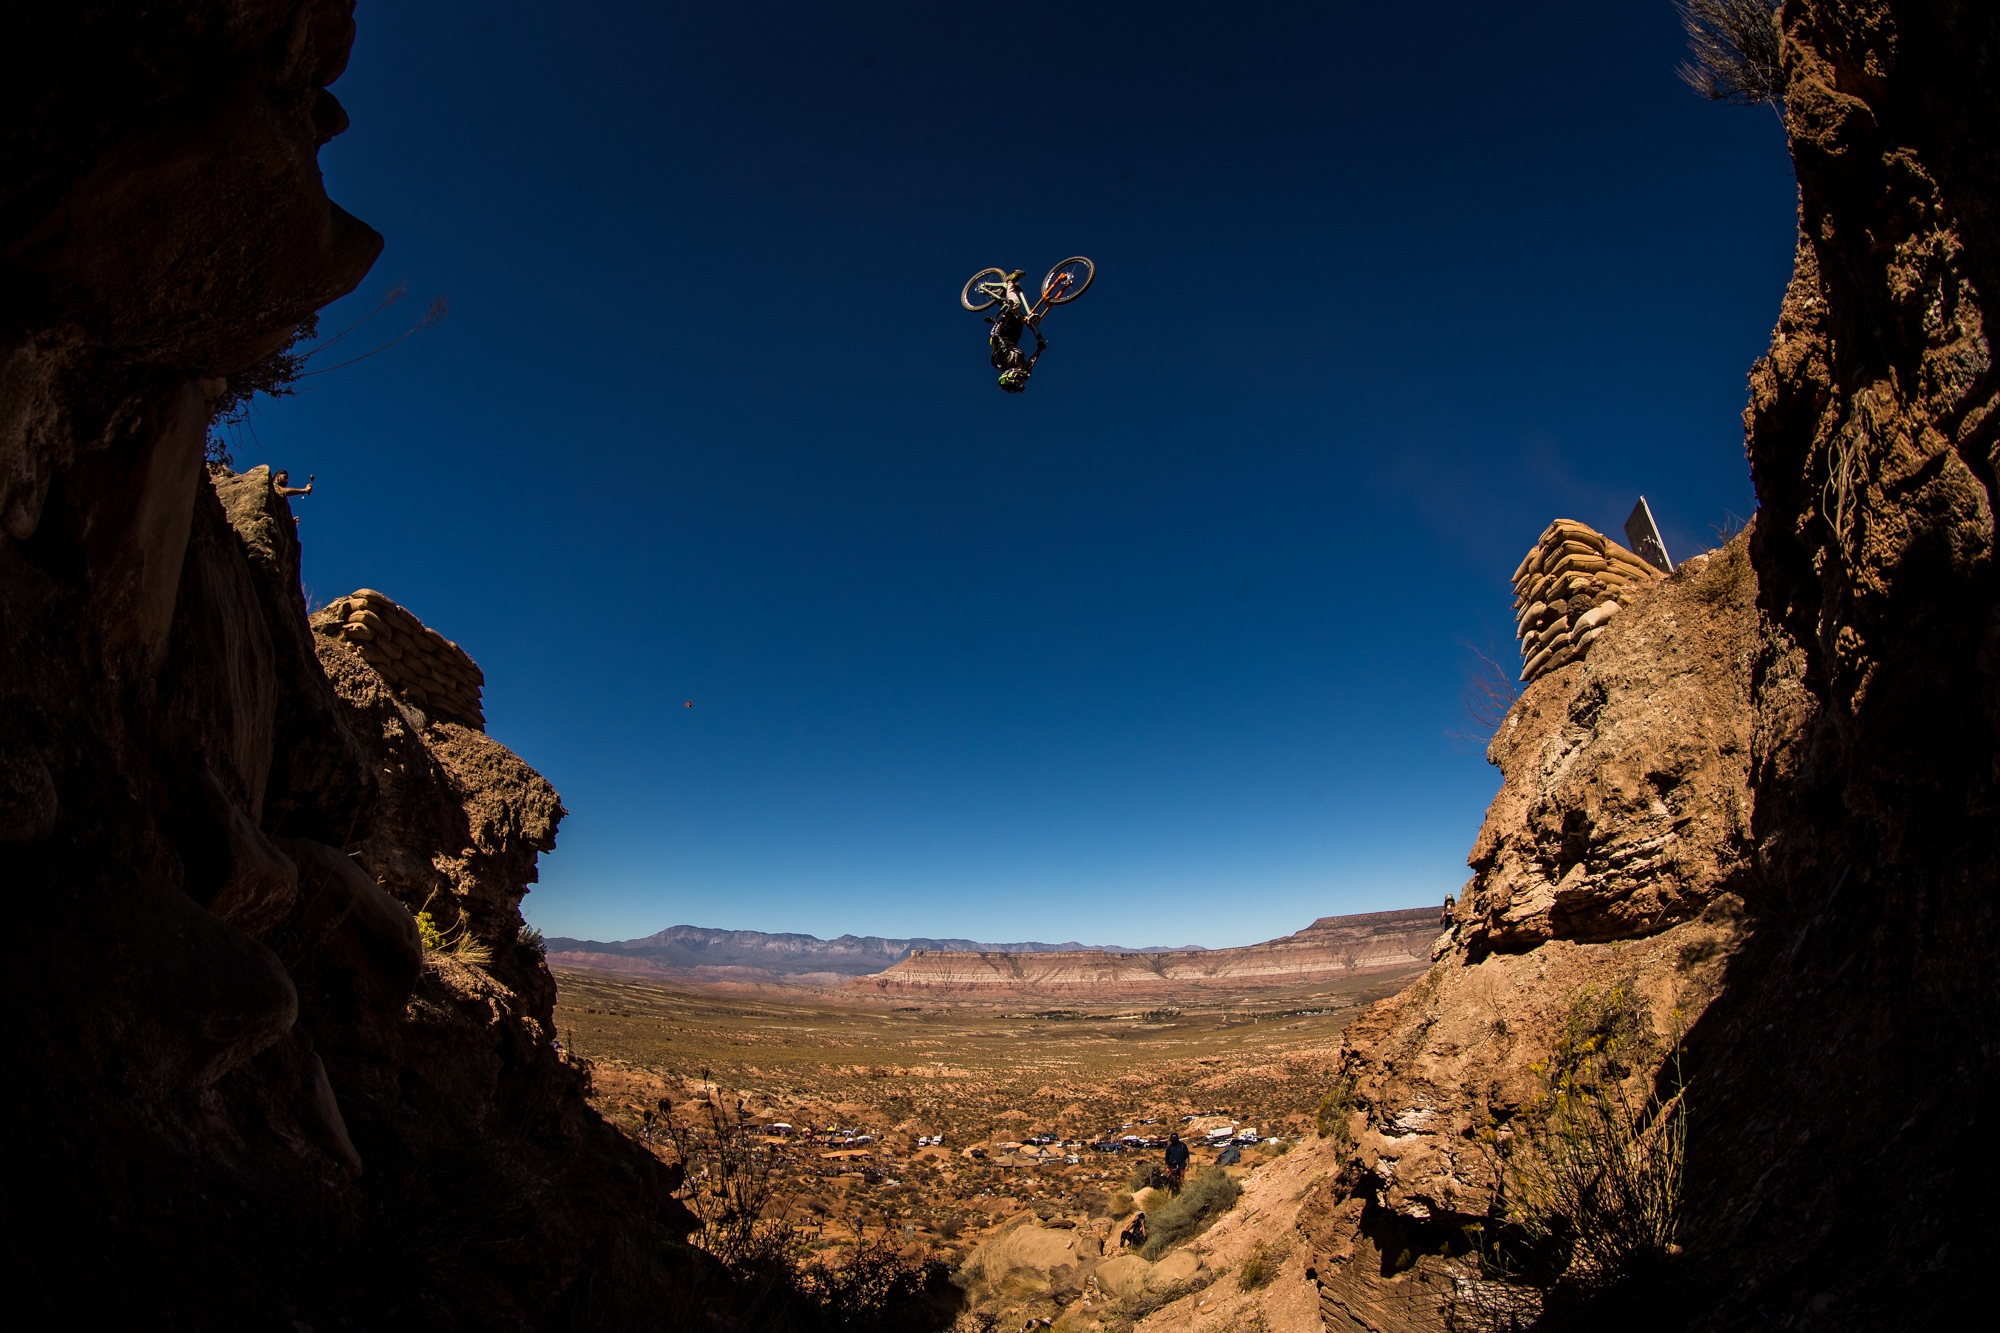 Brendog Blasts his Canyon Gap at Red Bull Rampage 2019 - 2019 Red Bull Rampage Finals Photos by @maddogboris - Mountain Biking Pictures - Vital MTB